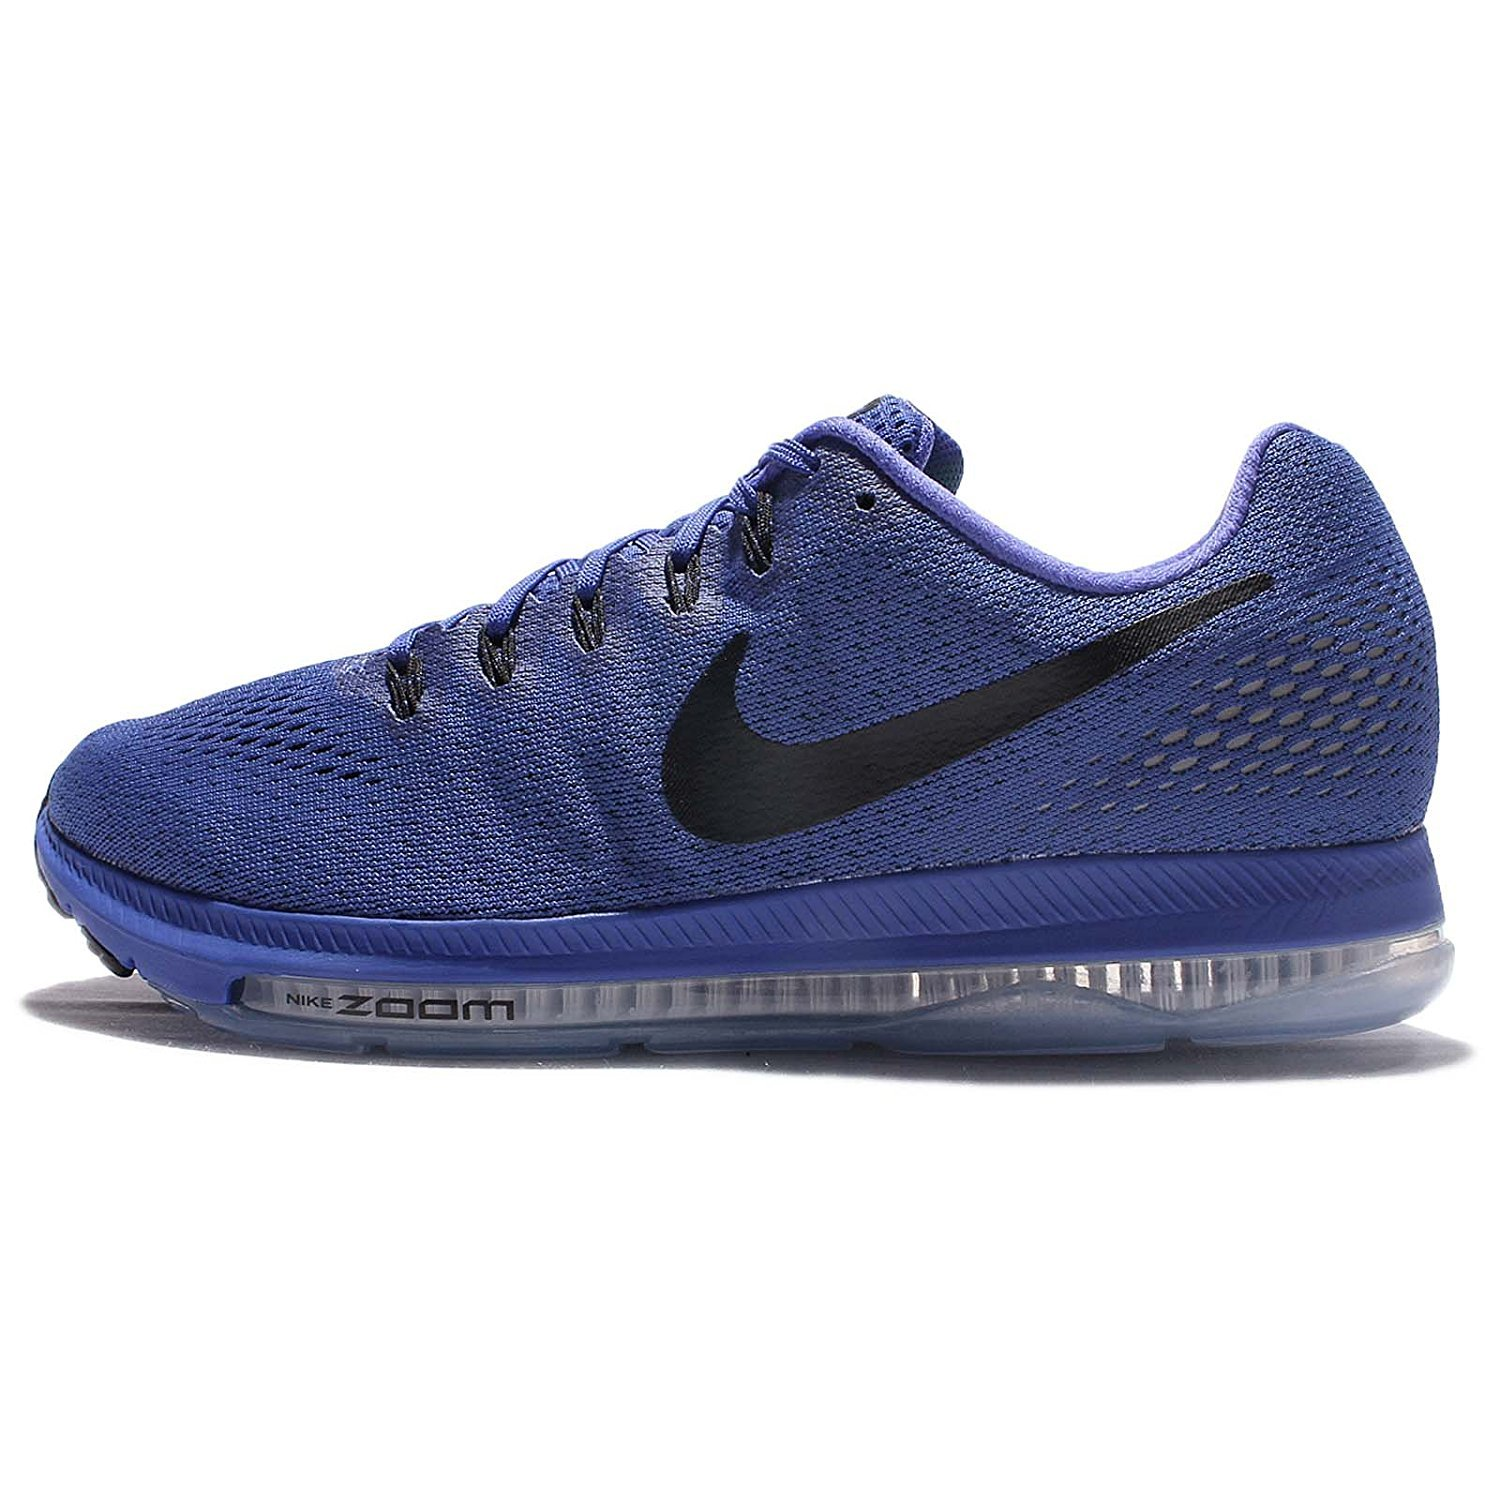 NIKE Zoom All Out Low Men's Running Sneaker B01NBYMF4C 11.5 D(M) US|Blue